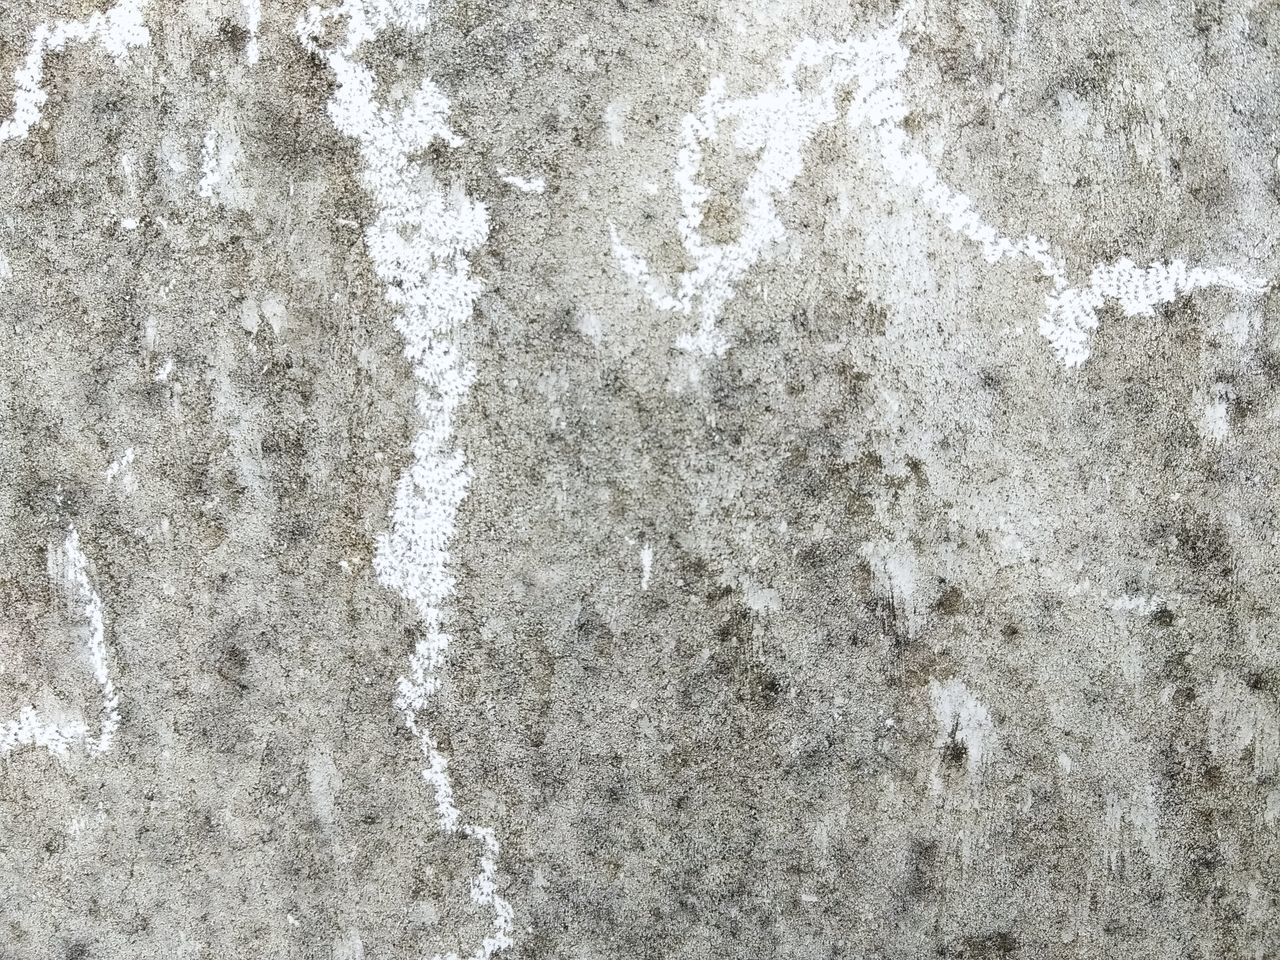 Backgrounds Pattern Full Frame Textured  Textile Ink Paper No People Day Close-up Indoors  Nature Surfaces Surfaces And Textures Textures And Surfaces Textured  Grunge Old Dirty Outdoors